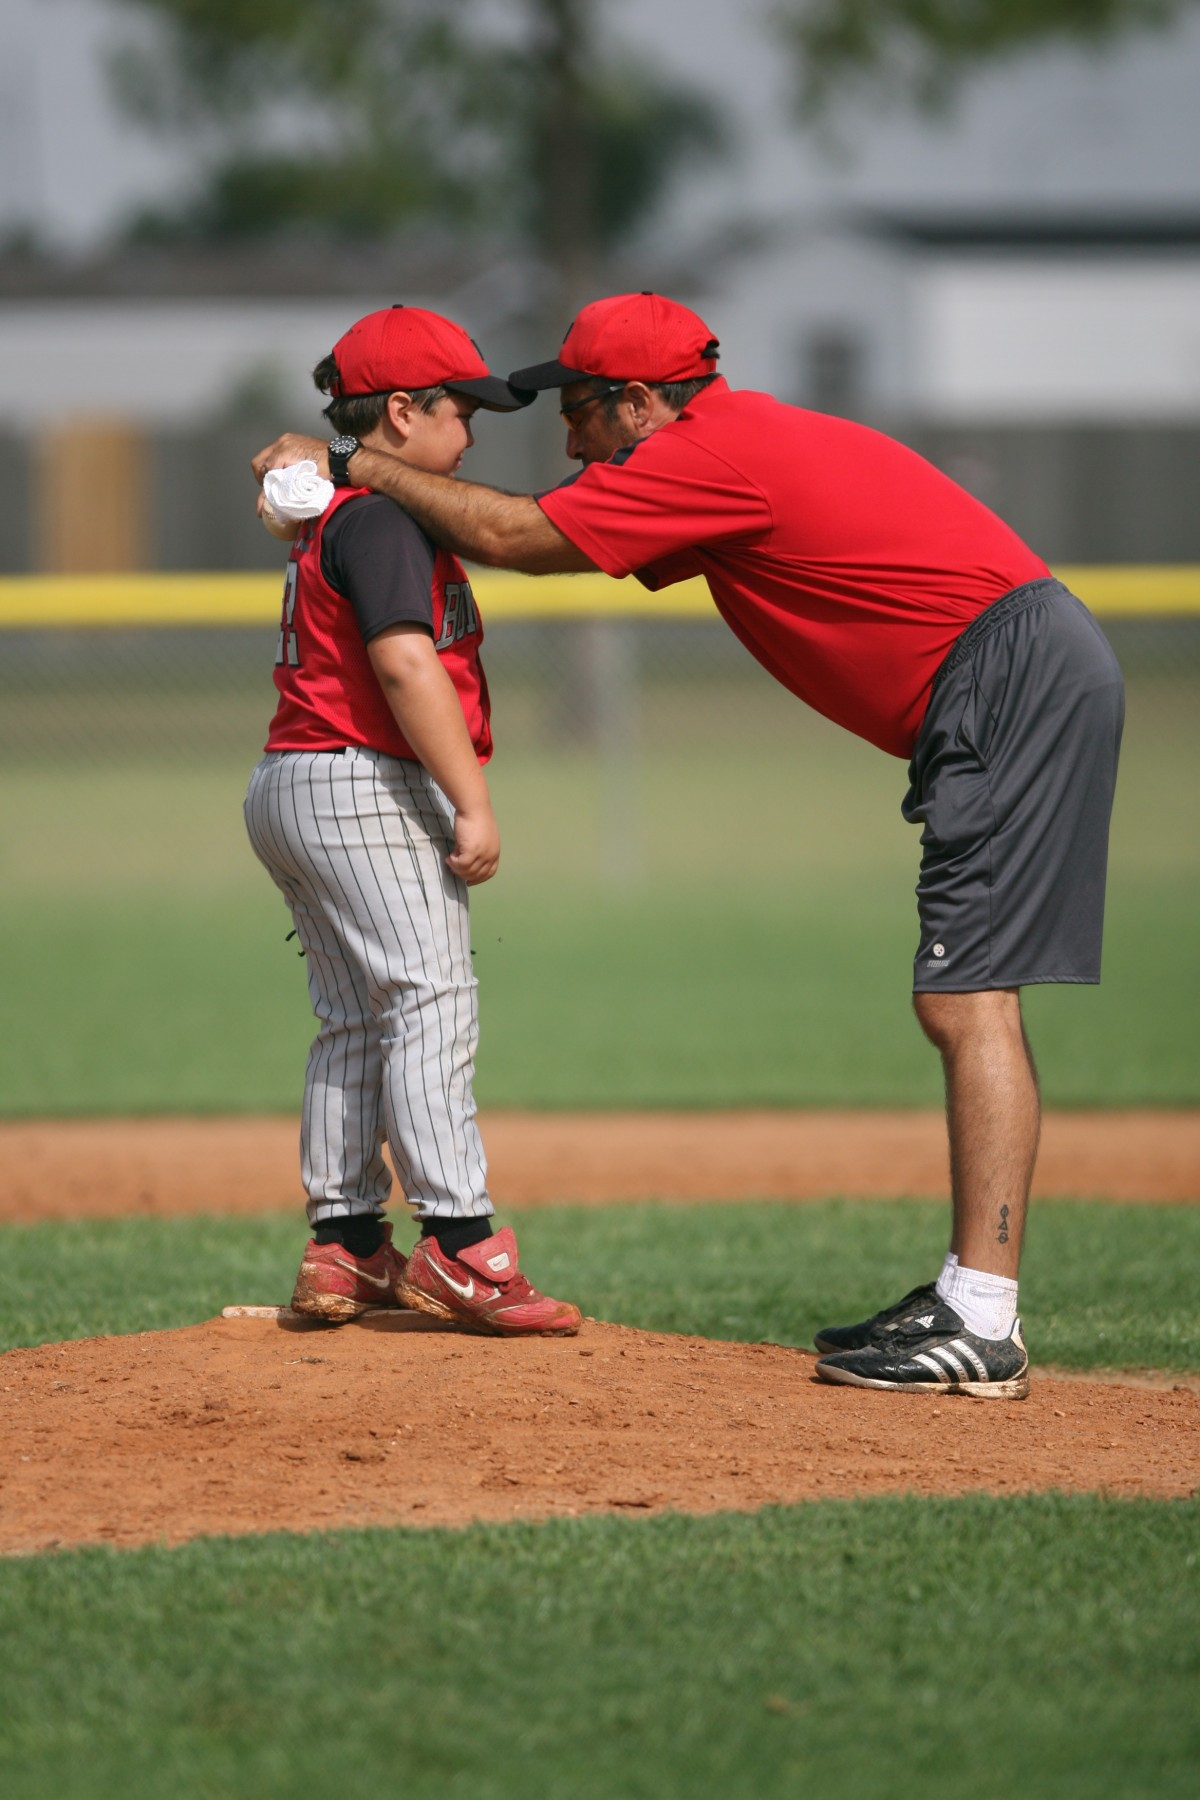 baseball_little_league_pitcher_pitching_mound_coach_conference_children_game-622905 (1).jpg